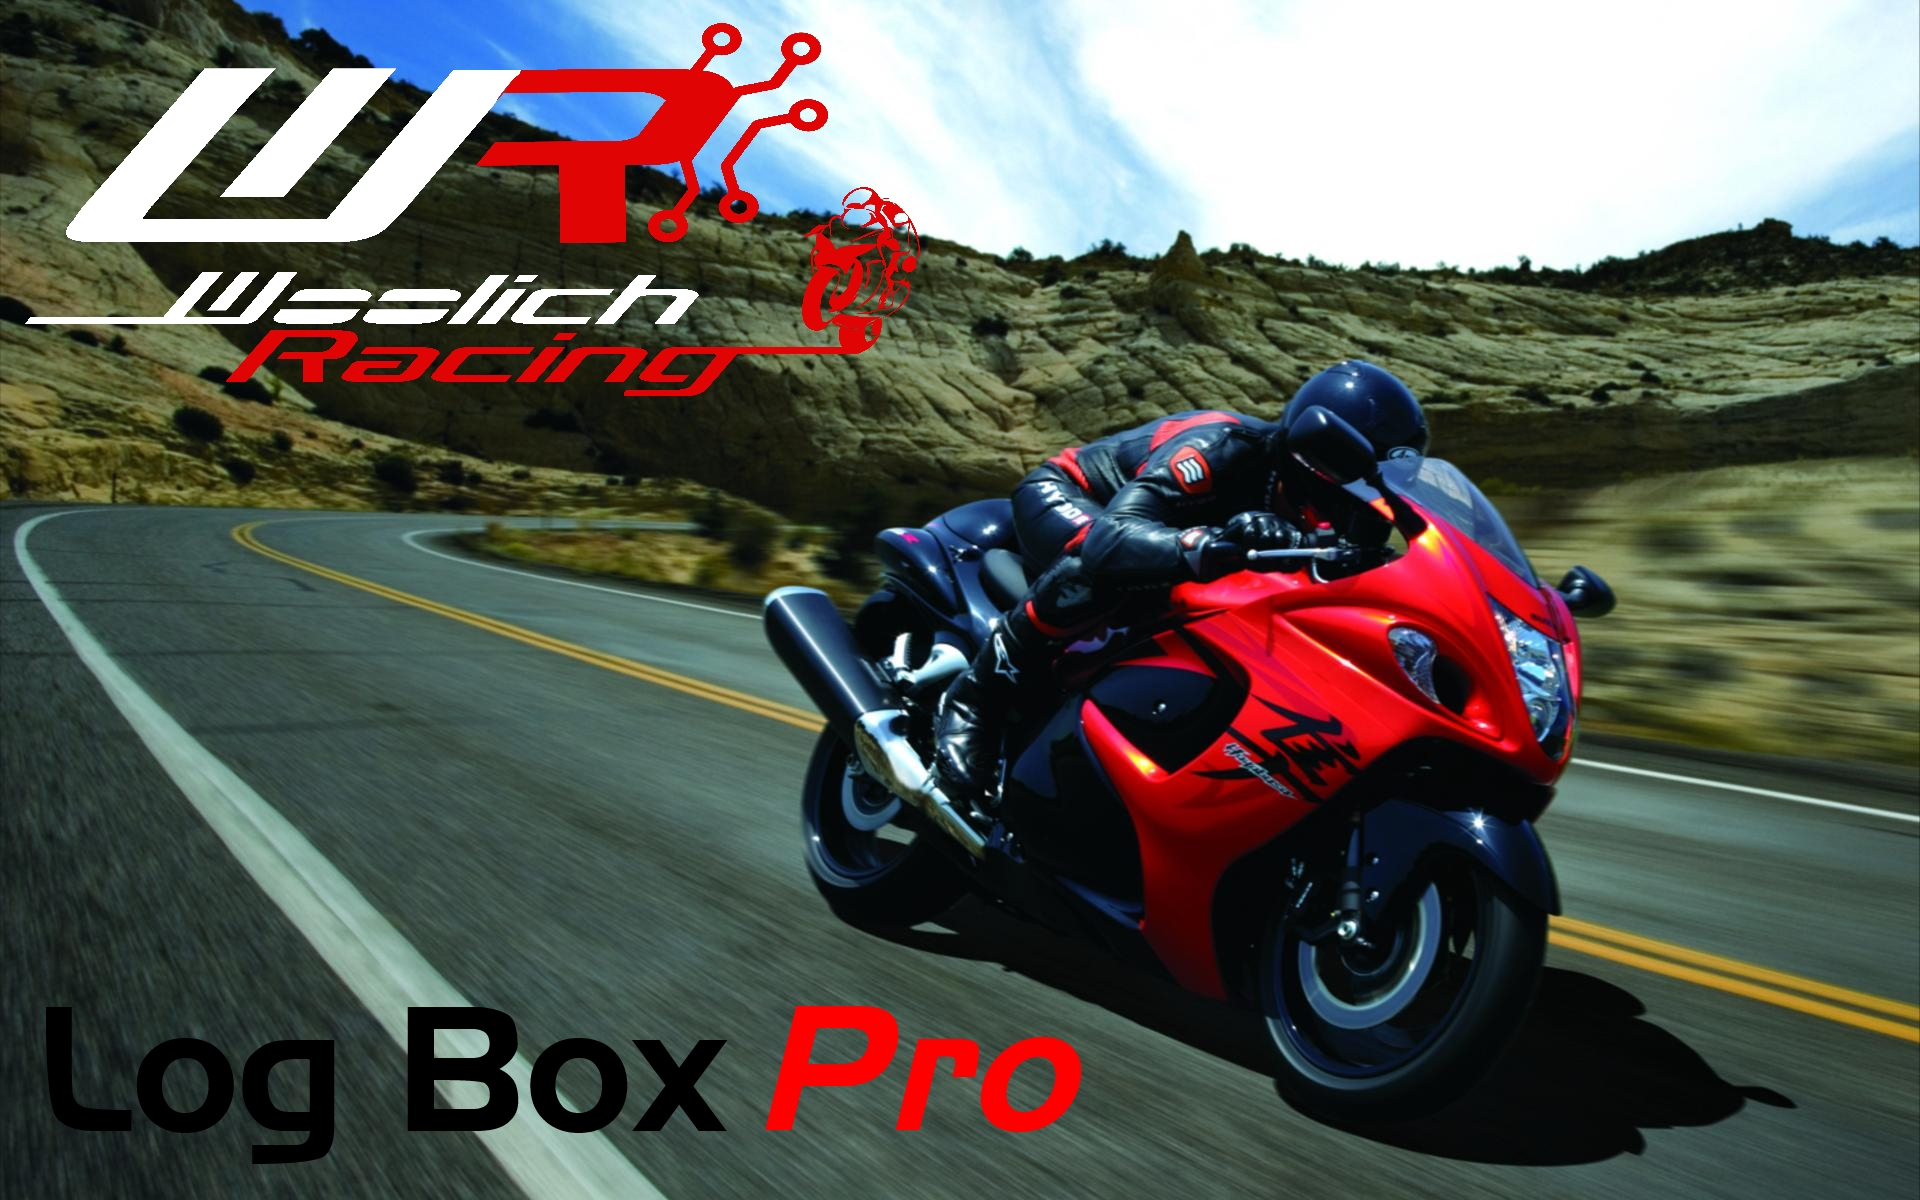 Woolich Racing Log Box Pro (Denso)